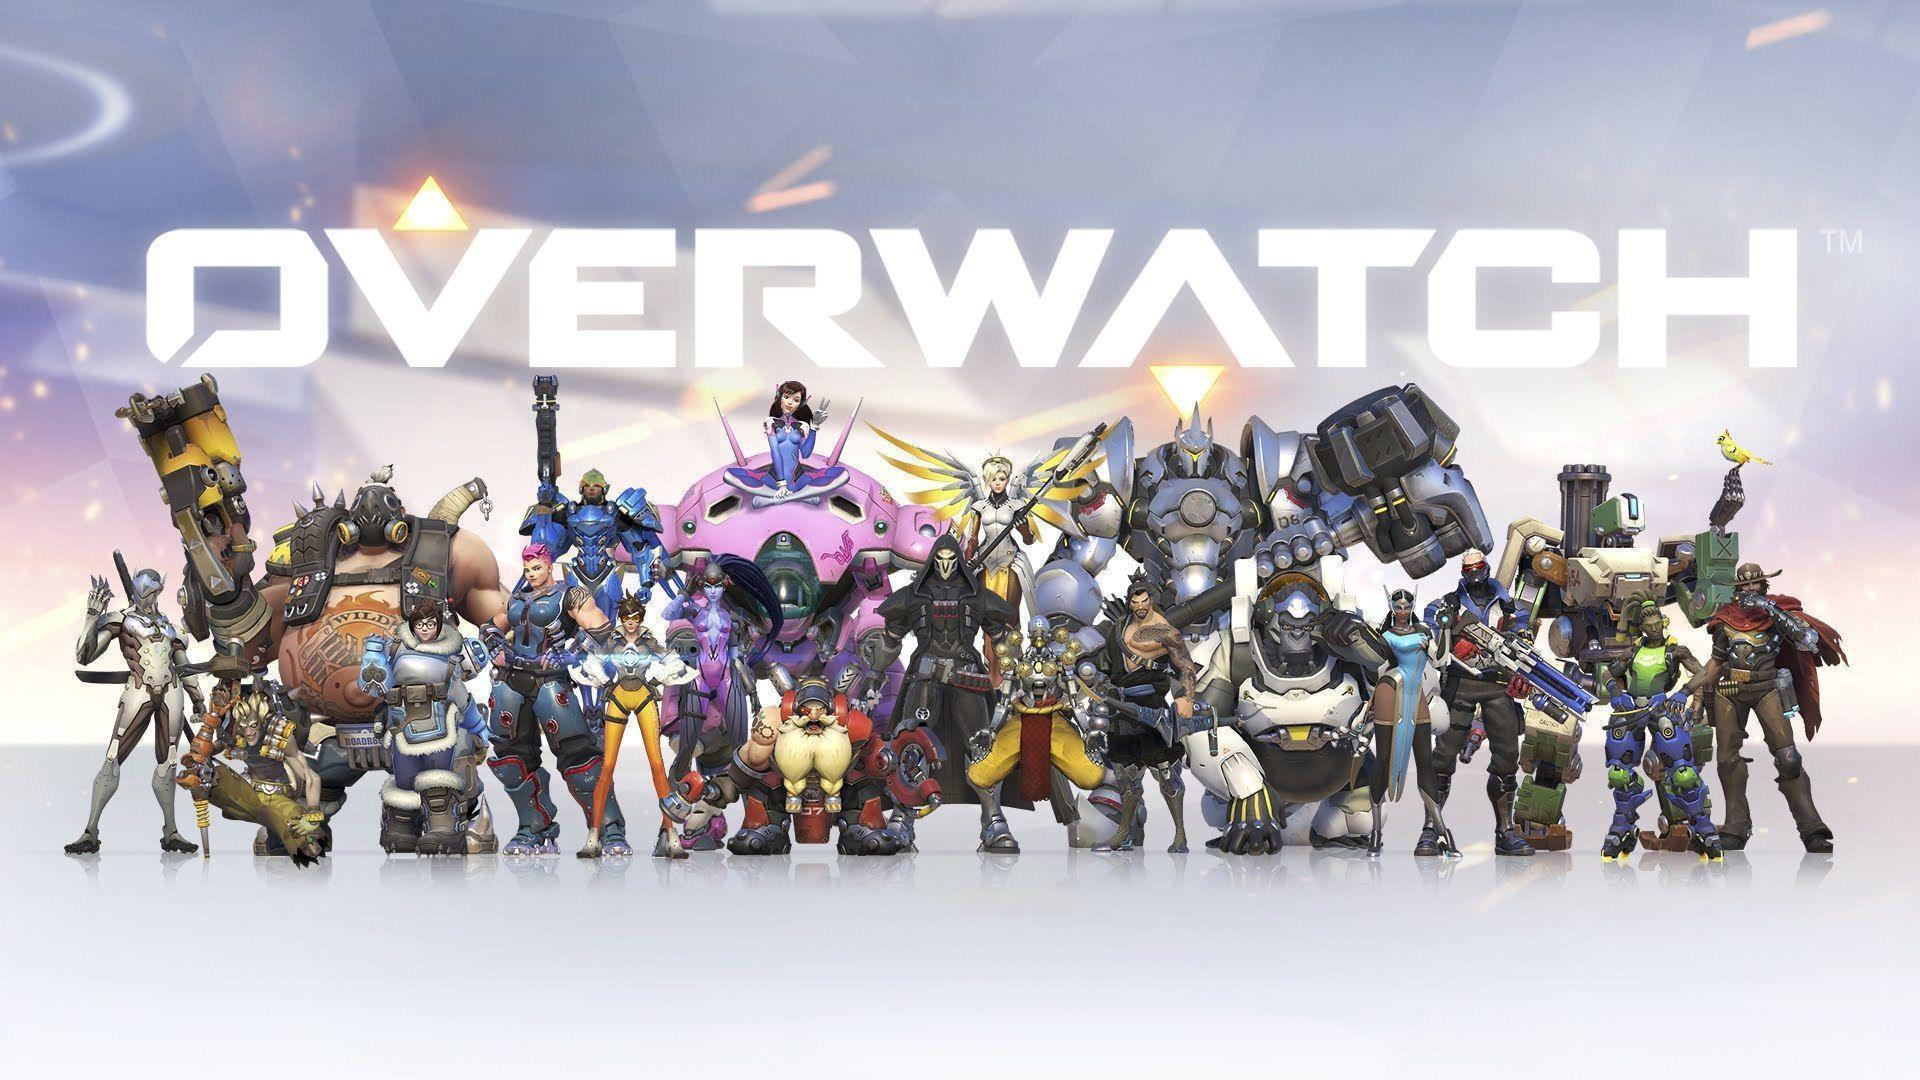 Overwatch Wallpapers Image Photos Pictures Backgrounds